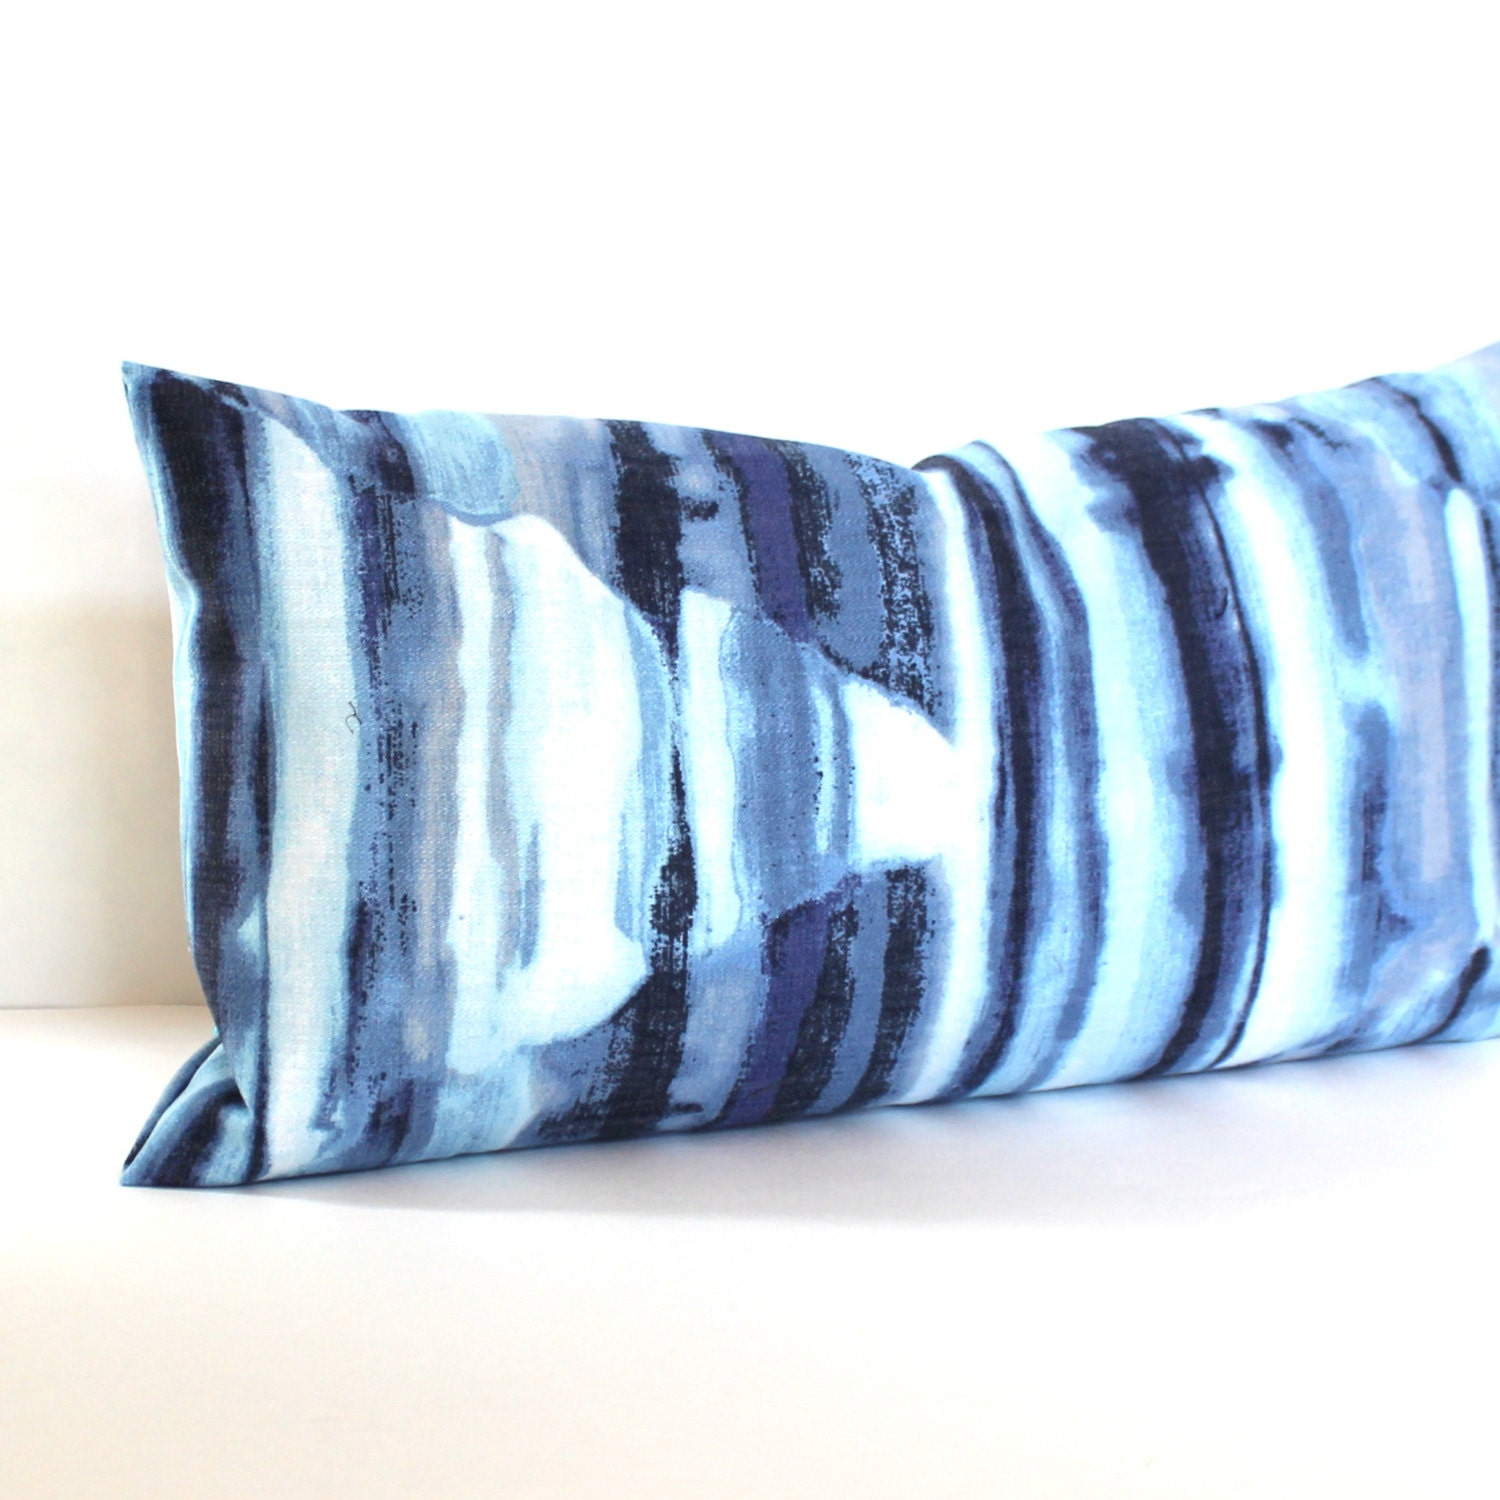 Blue Lumbar Throw Pillow : Lumbar Pillow Cover Blue Ombre Decorative Pillow by couchdwellers